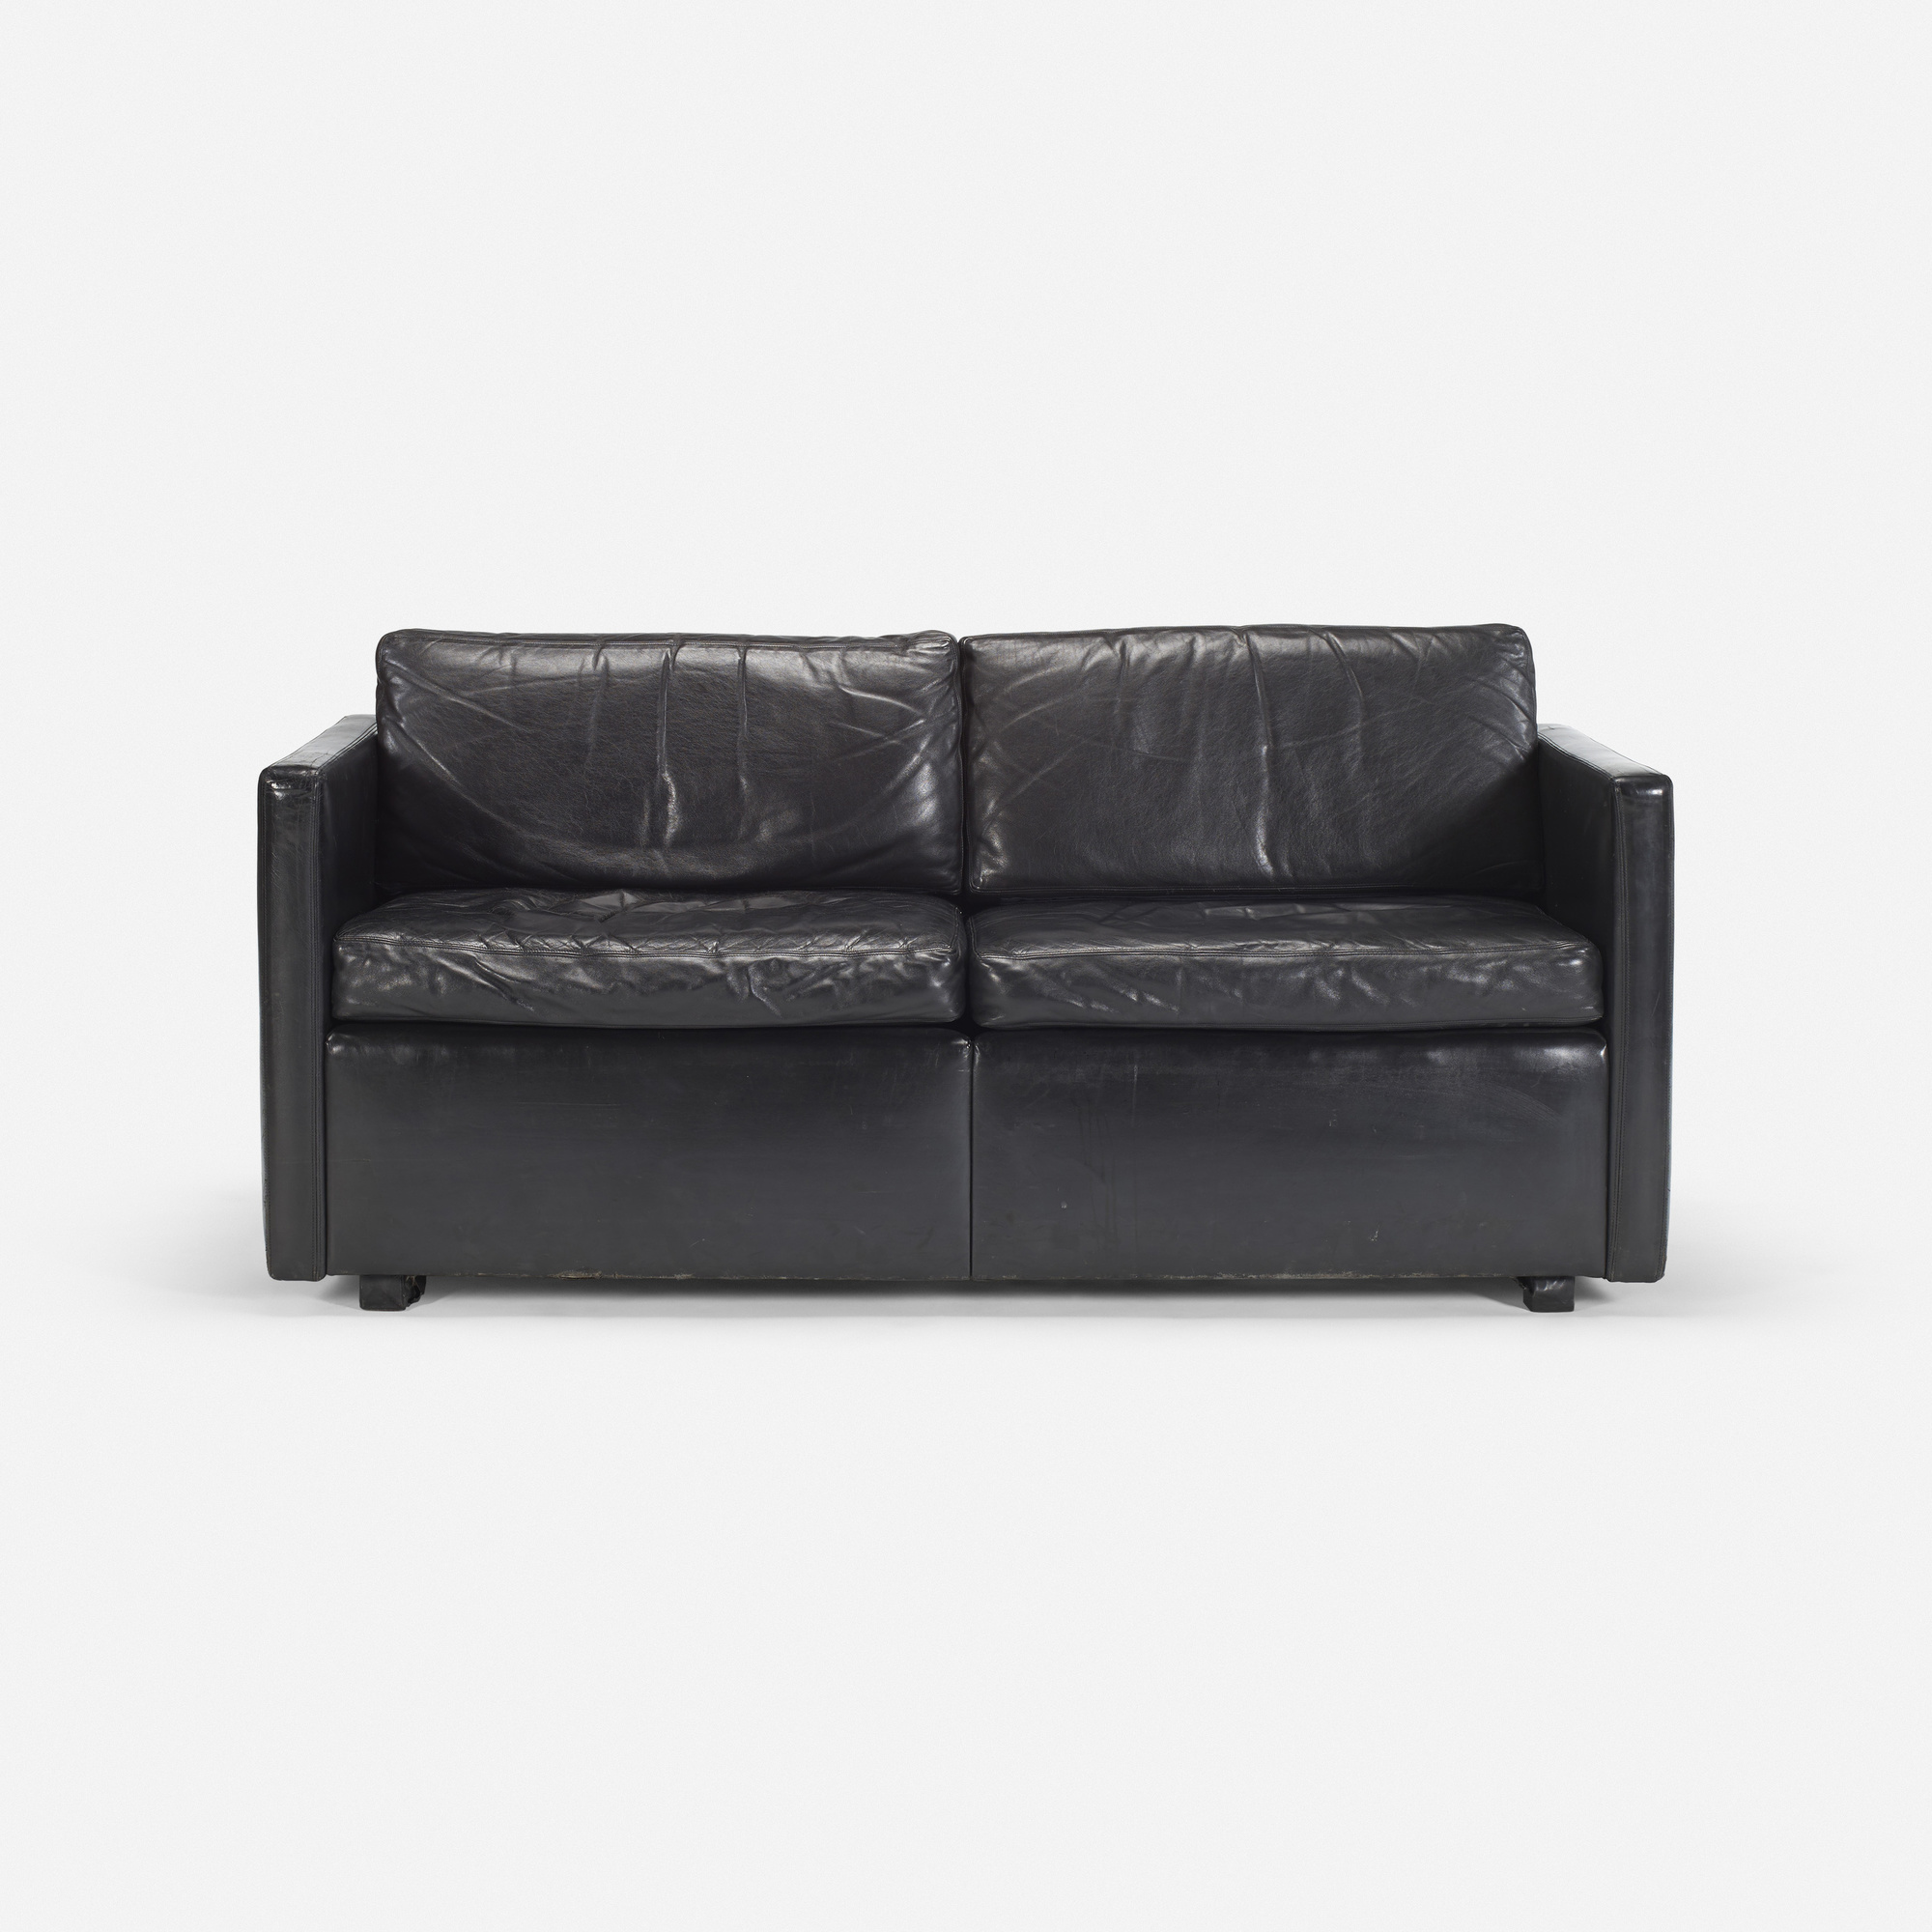 108: Philip Johnson / Perching sofa from The Four Seasons (1 of 1)